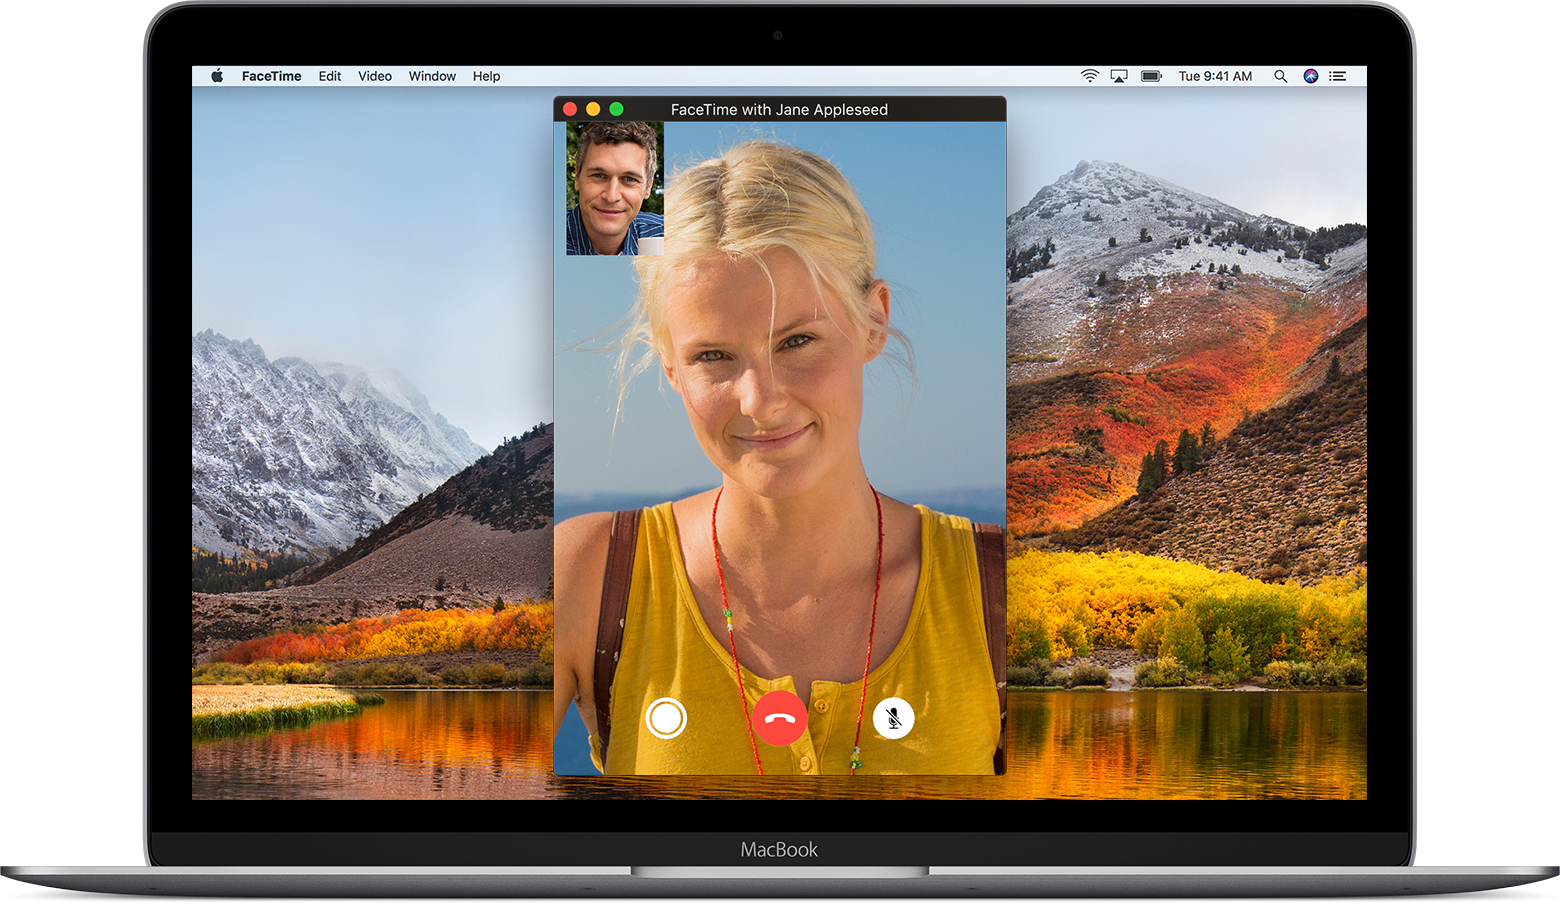 FaceTime application on a Mac